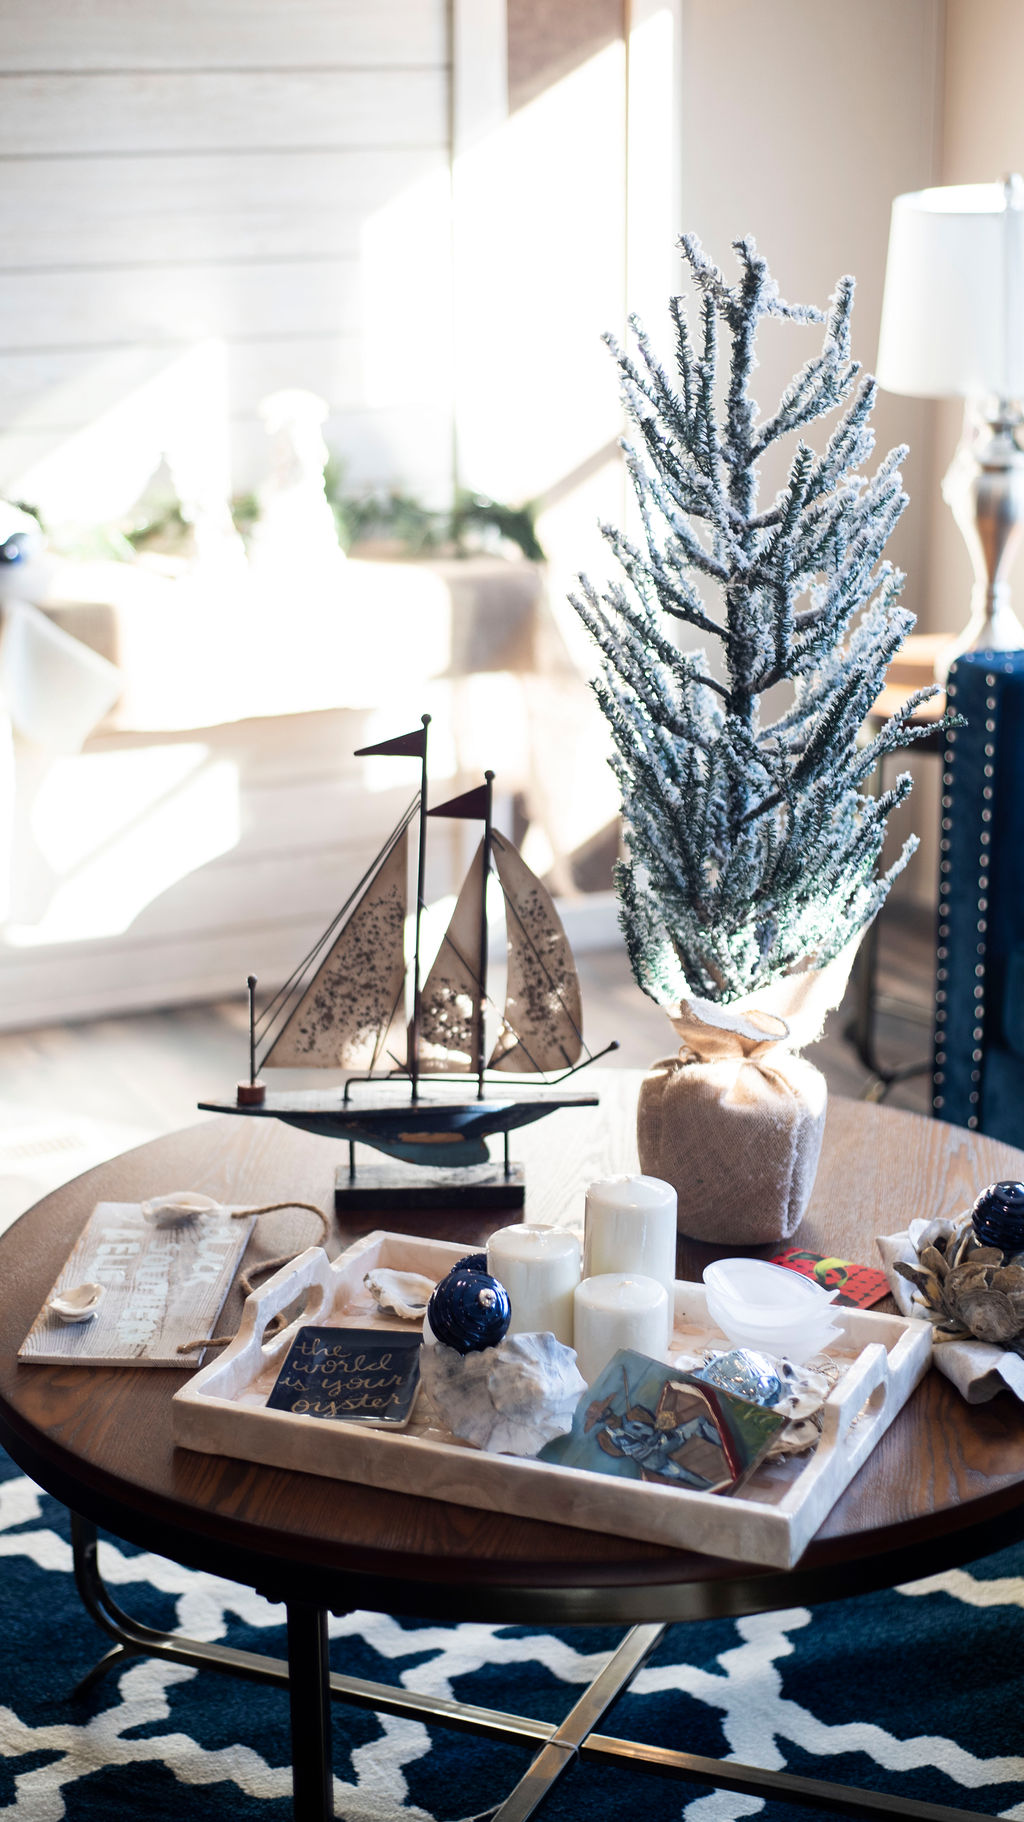 DSC_2133-1 How to Have a Farmhouse Christmas: Lowcountry Style